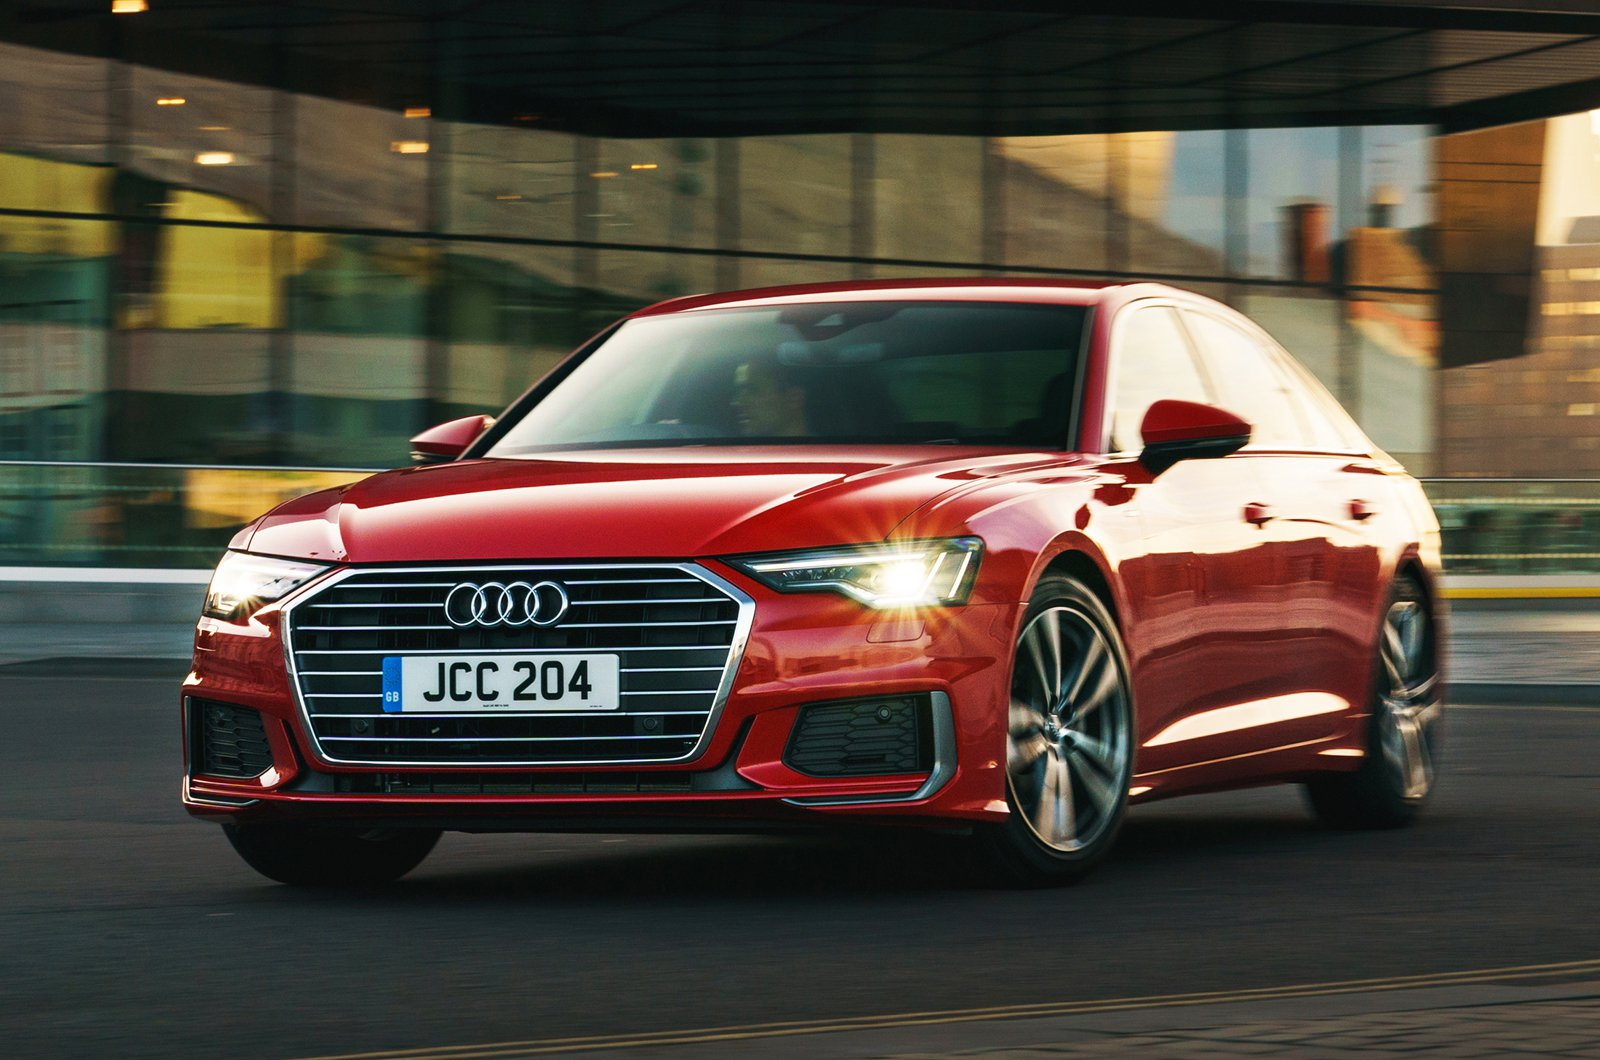 Audi A6 saloon front - red